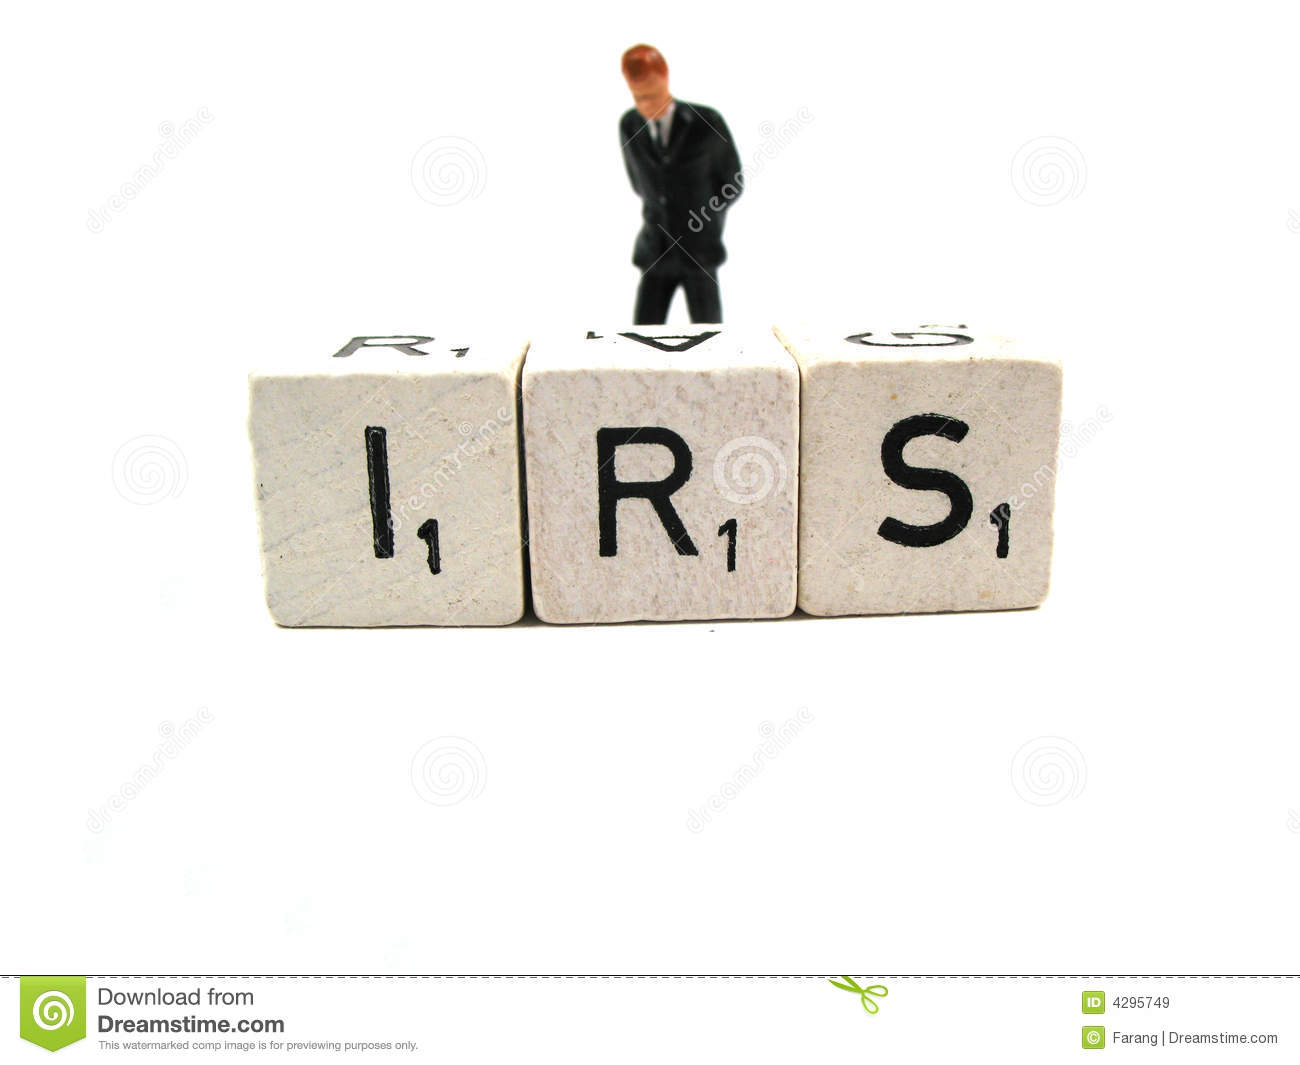 Trouble with the IRS